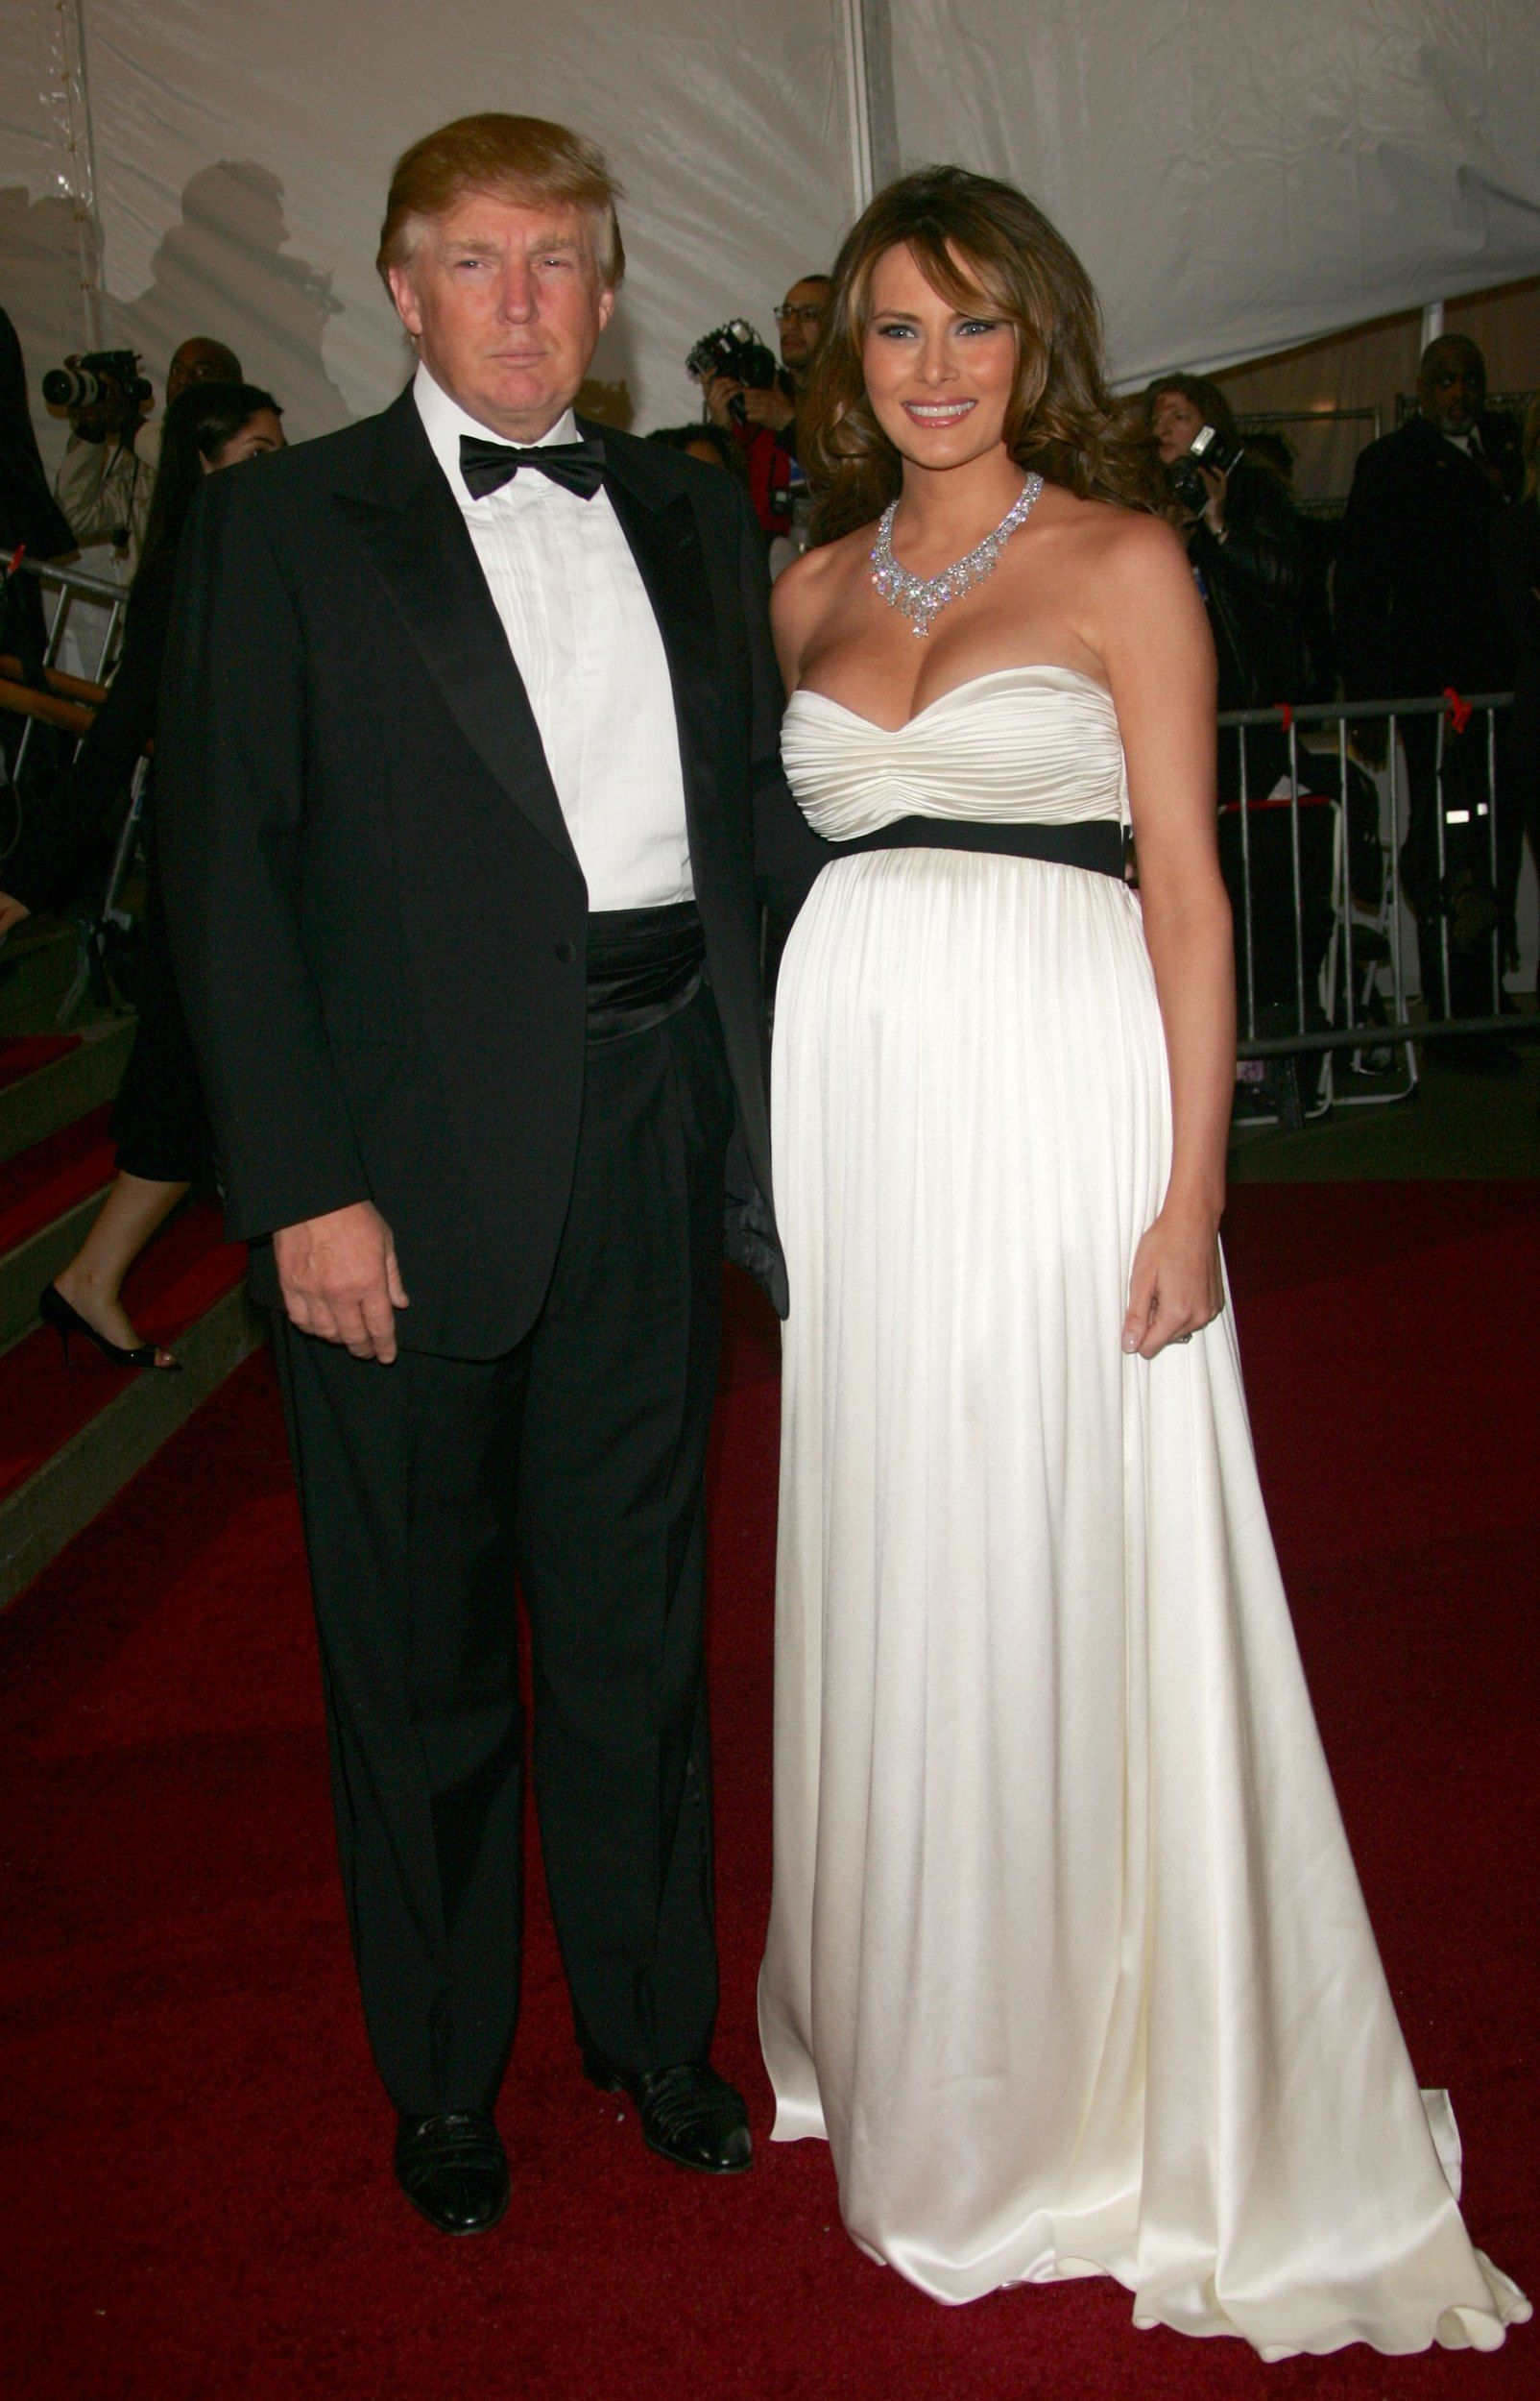 5e7aea89 Before Melania Trump became first lady, she was just another model walking  the red carpet at events.